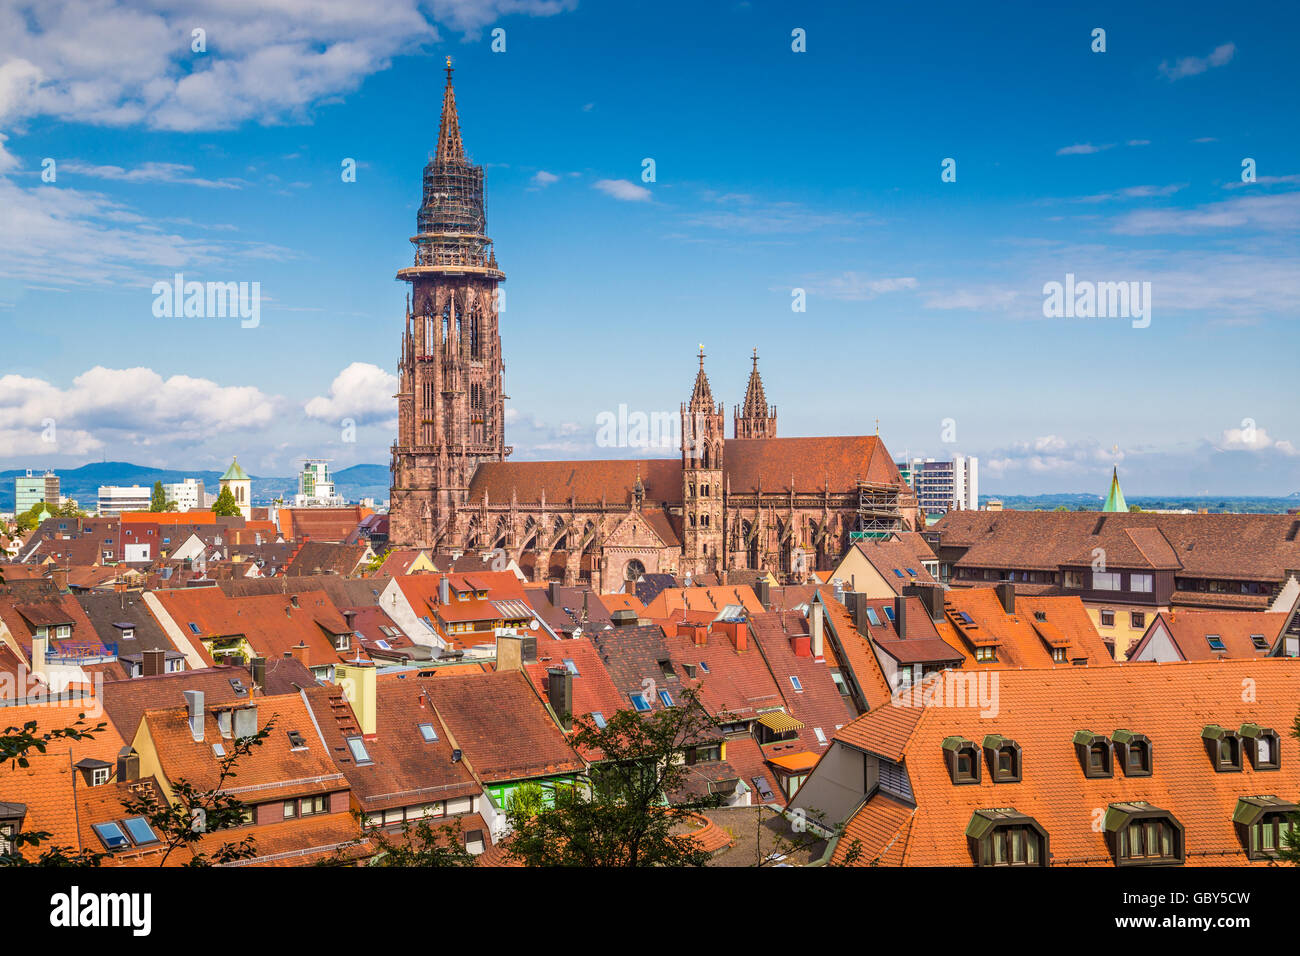 Historic town of Freiburg im Breisgau with famous Freiburg Minster cathedral in summer, Baden-Wurttemberg, Germany - Stock Image